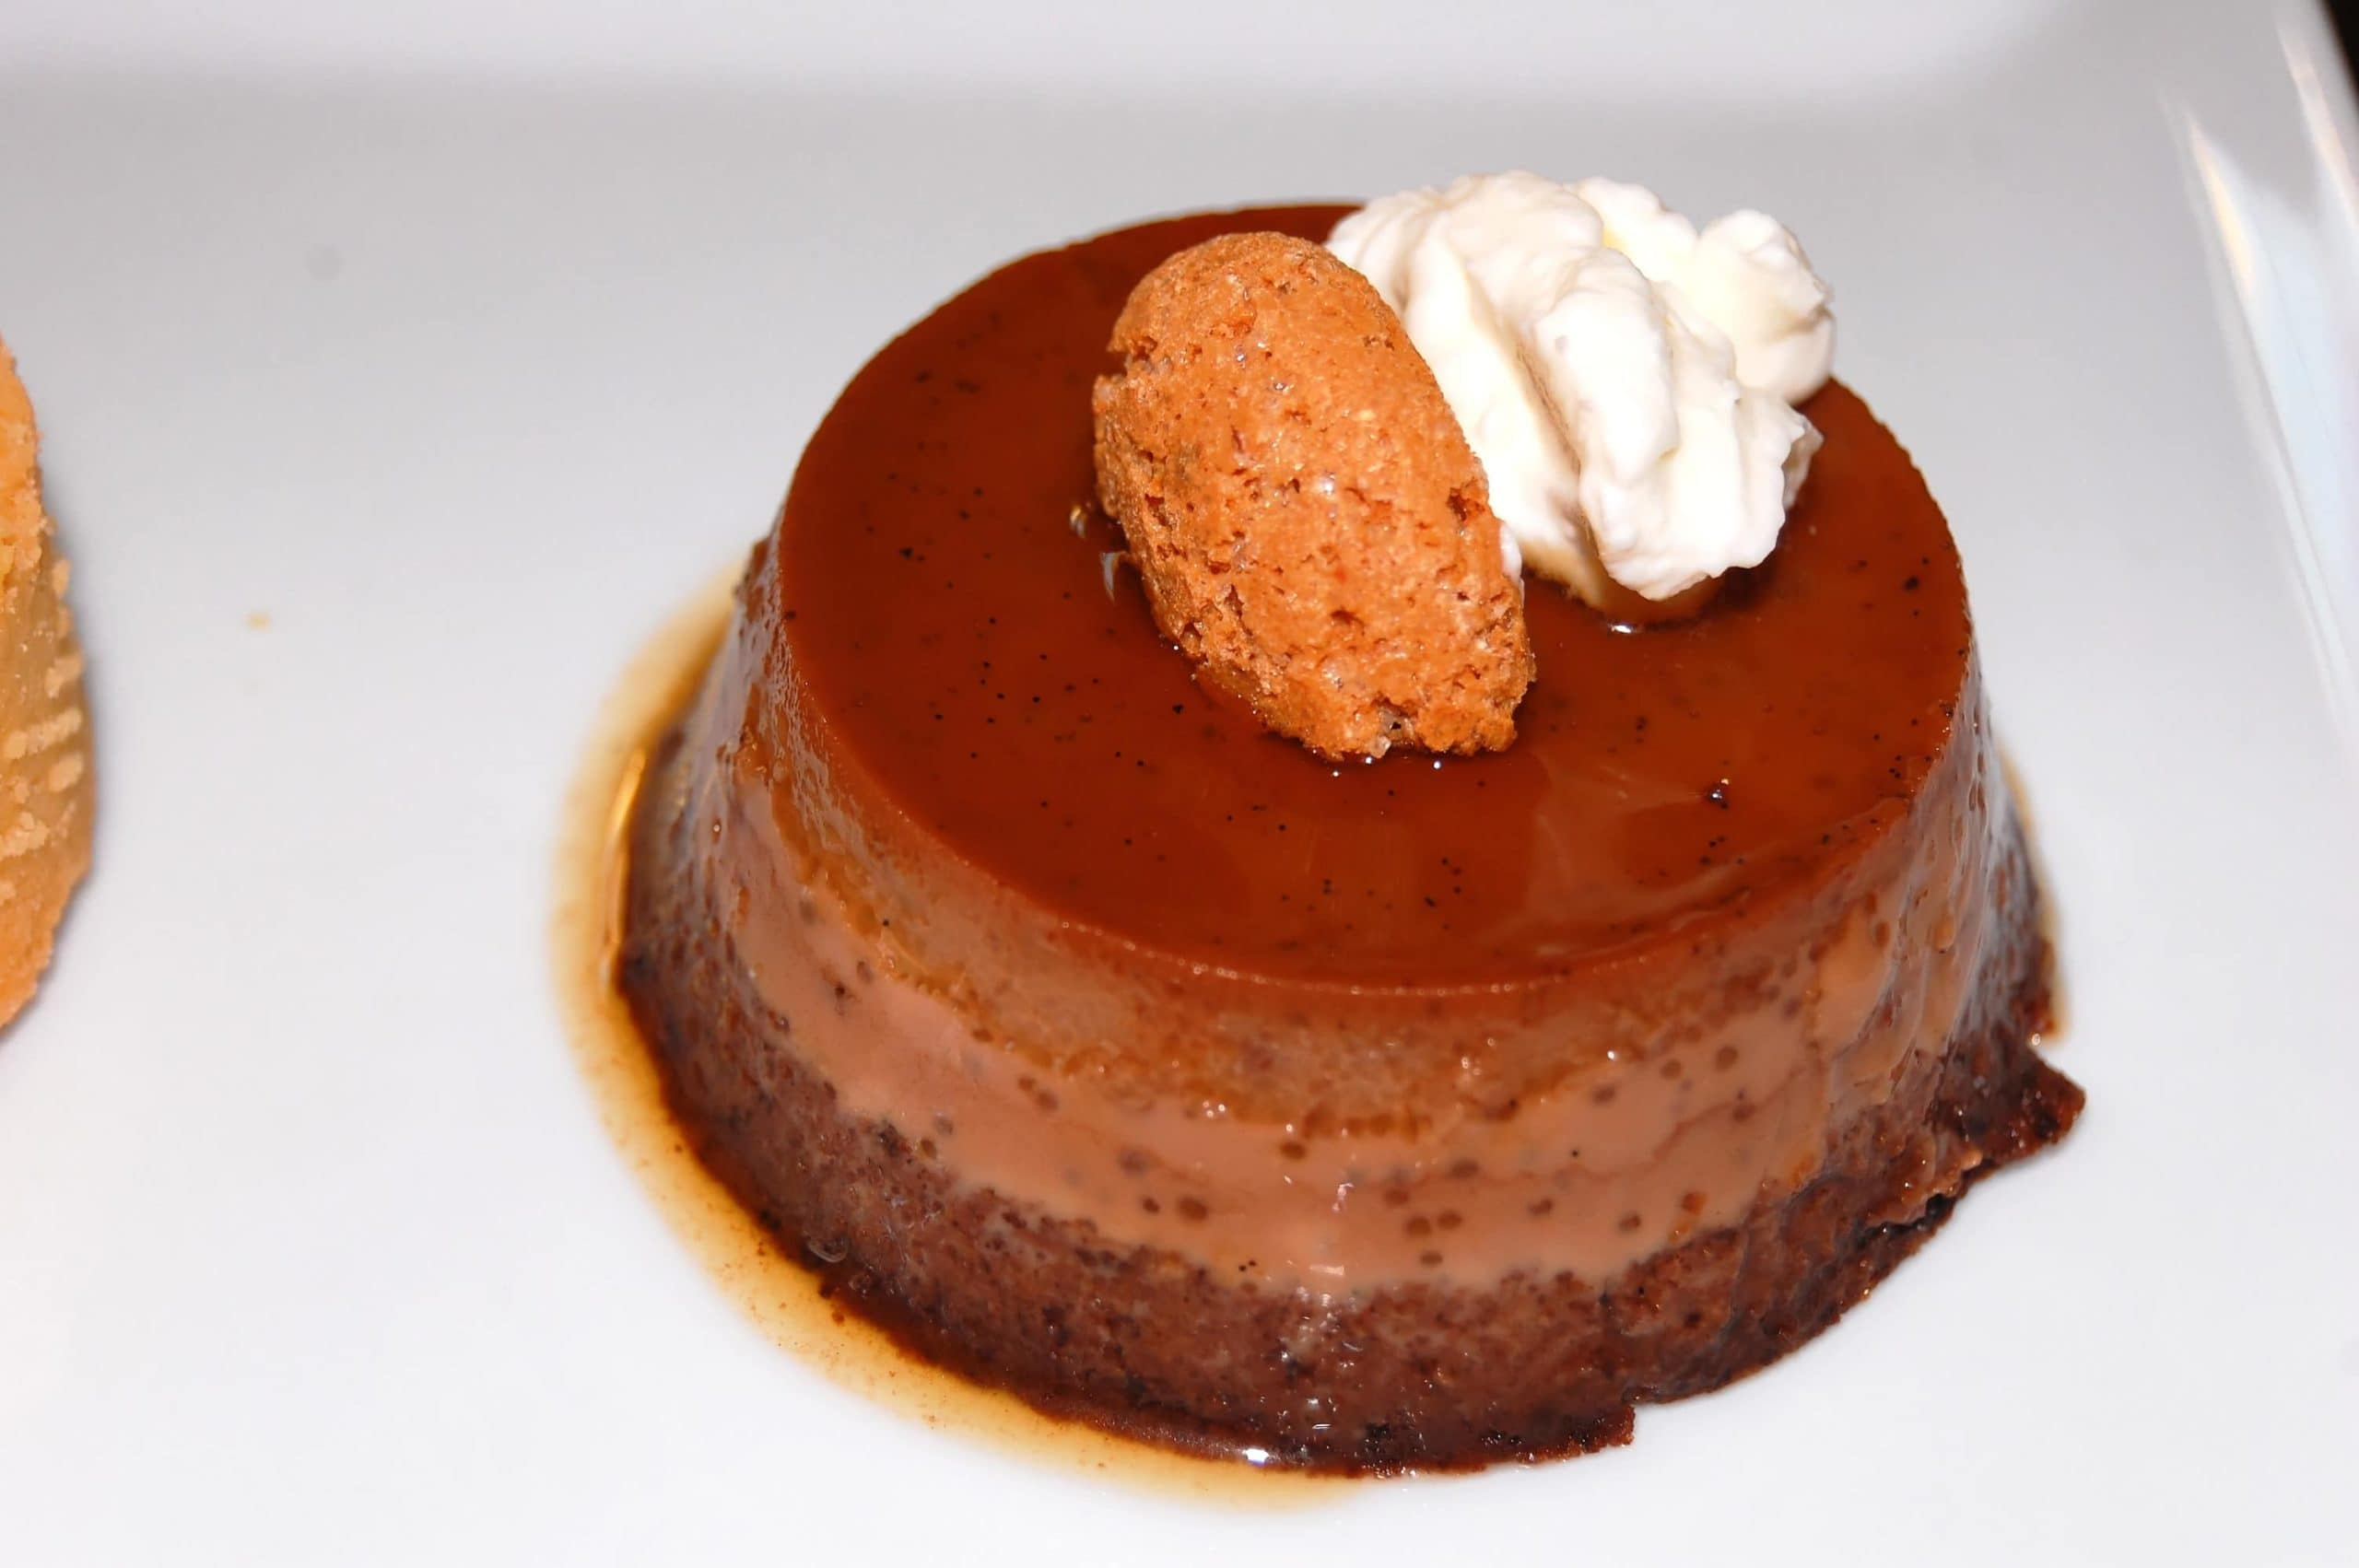 Bonet (Piedmont chocolate and amaretti biscuits pudding)